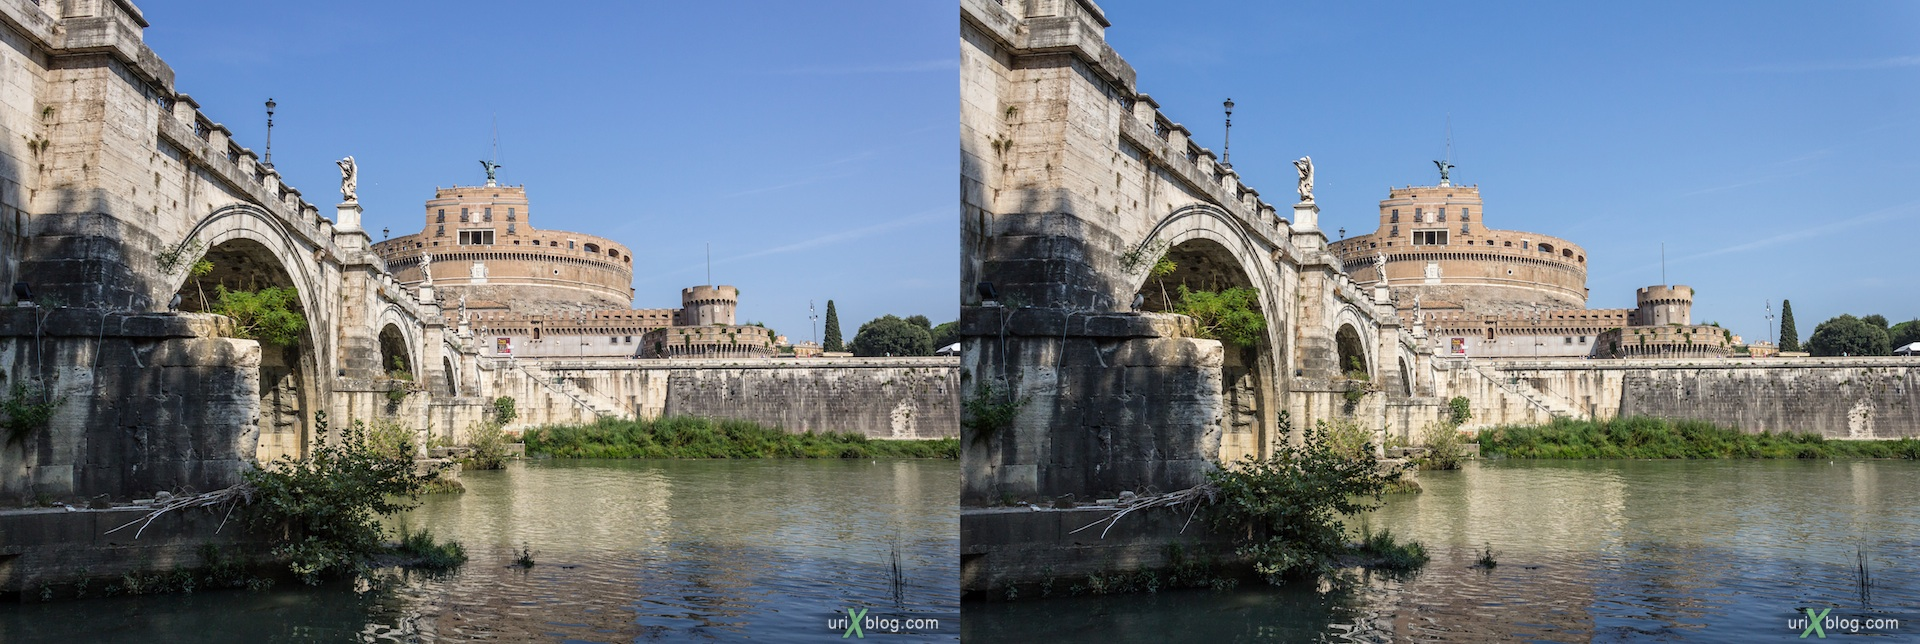 2012, seafront, embankment, Tiber river, bridge of Umberto 1, bridge of Sant Angelo, castel Sant Angelo (Mausoleum of Hadrian), 3D, stereo pair, cross-eyed, crossview, cross view stereo pair